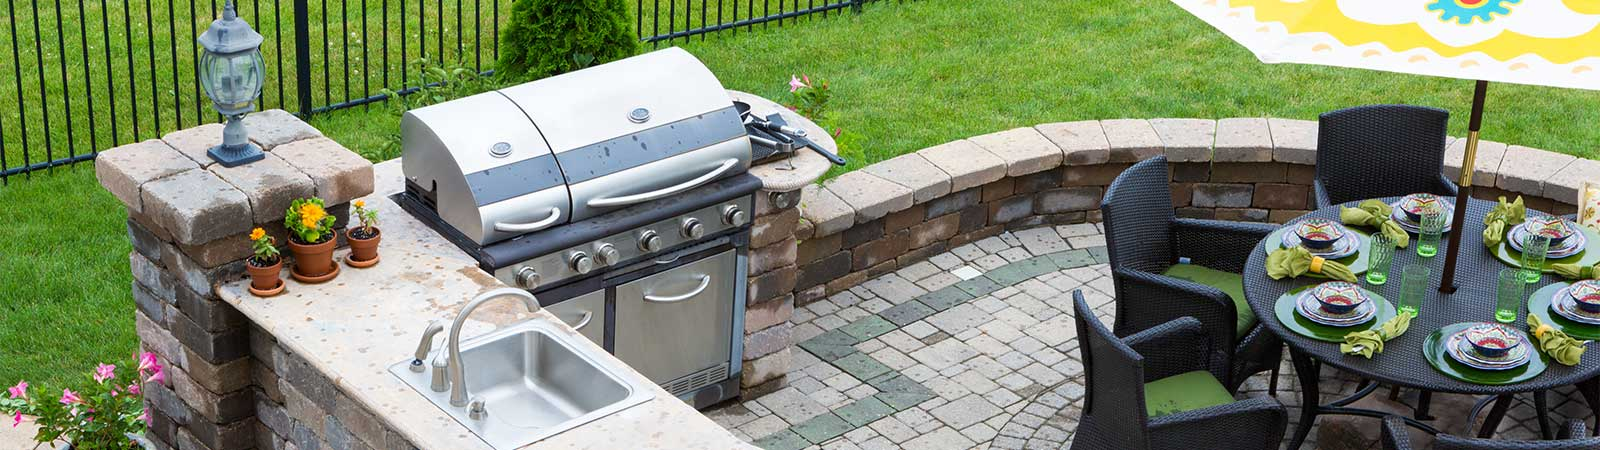 outdoor kitchen with grill and table